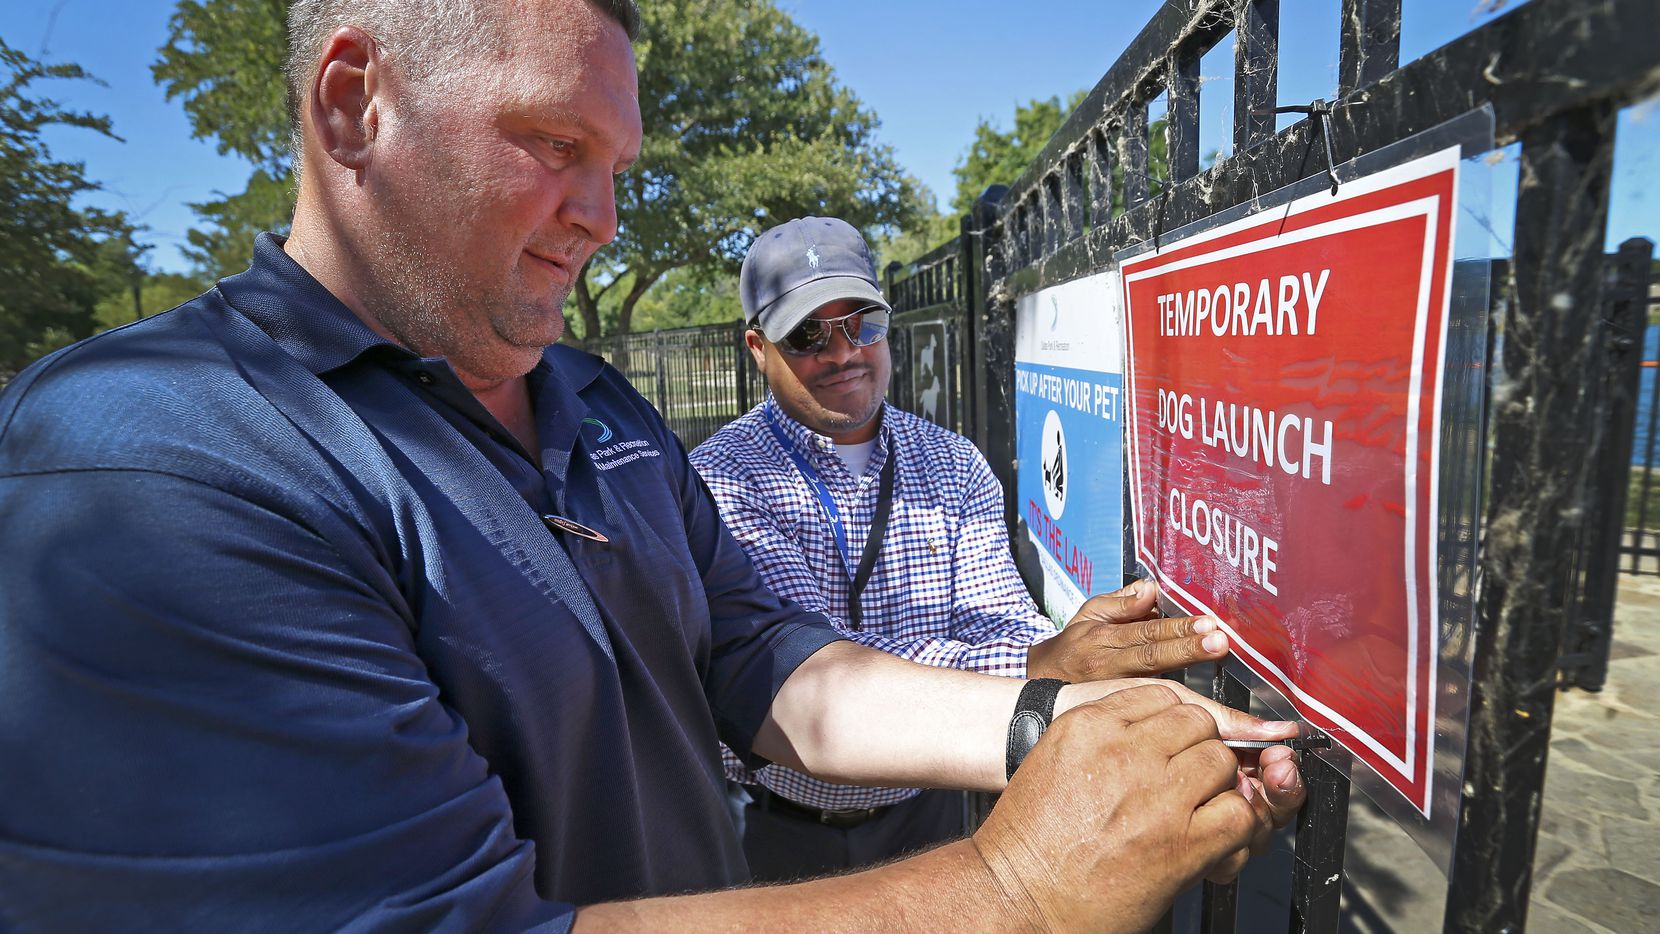 Russell Hooper, left, and Will Stonum of the Dallas Parks & Recreation, put up a closure sign on the gate of the dog launch at White Rock Lake on Thursday.